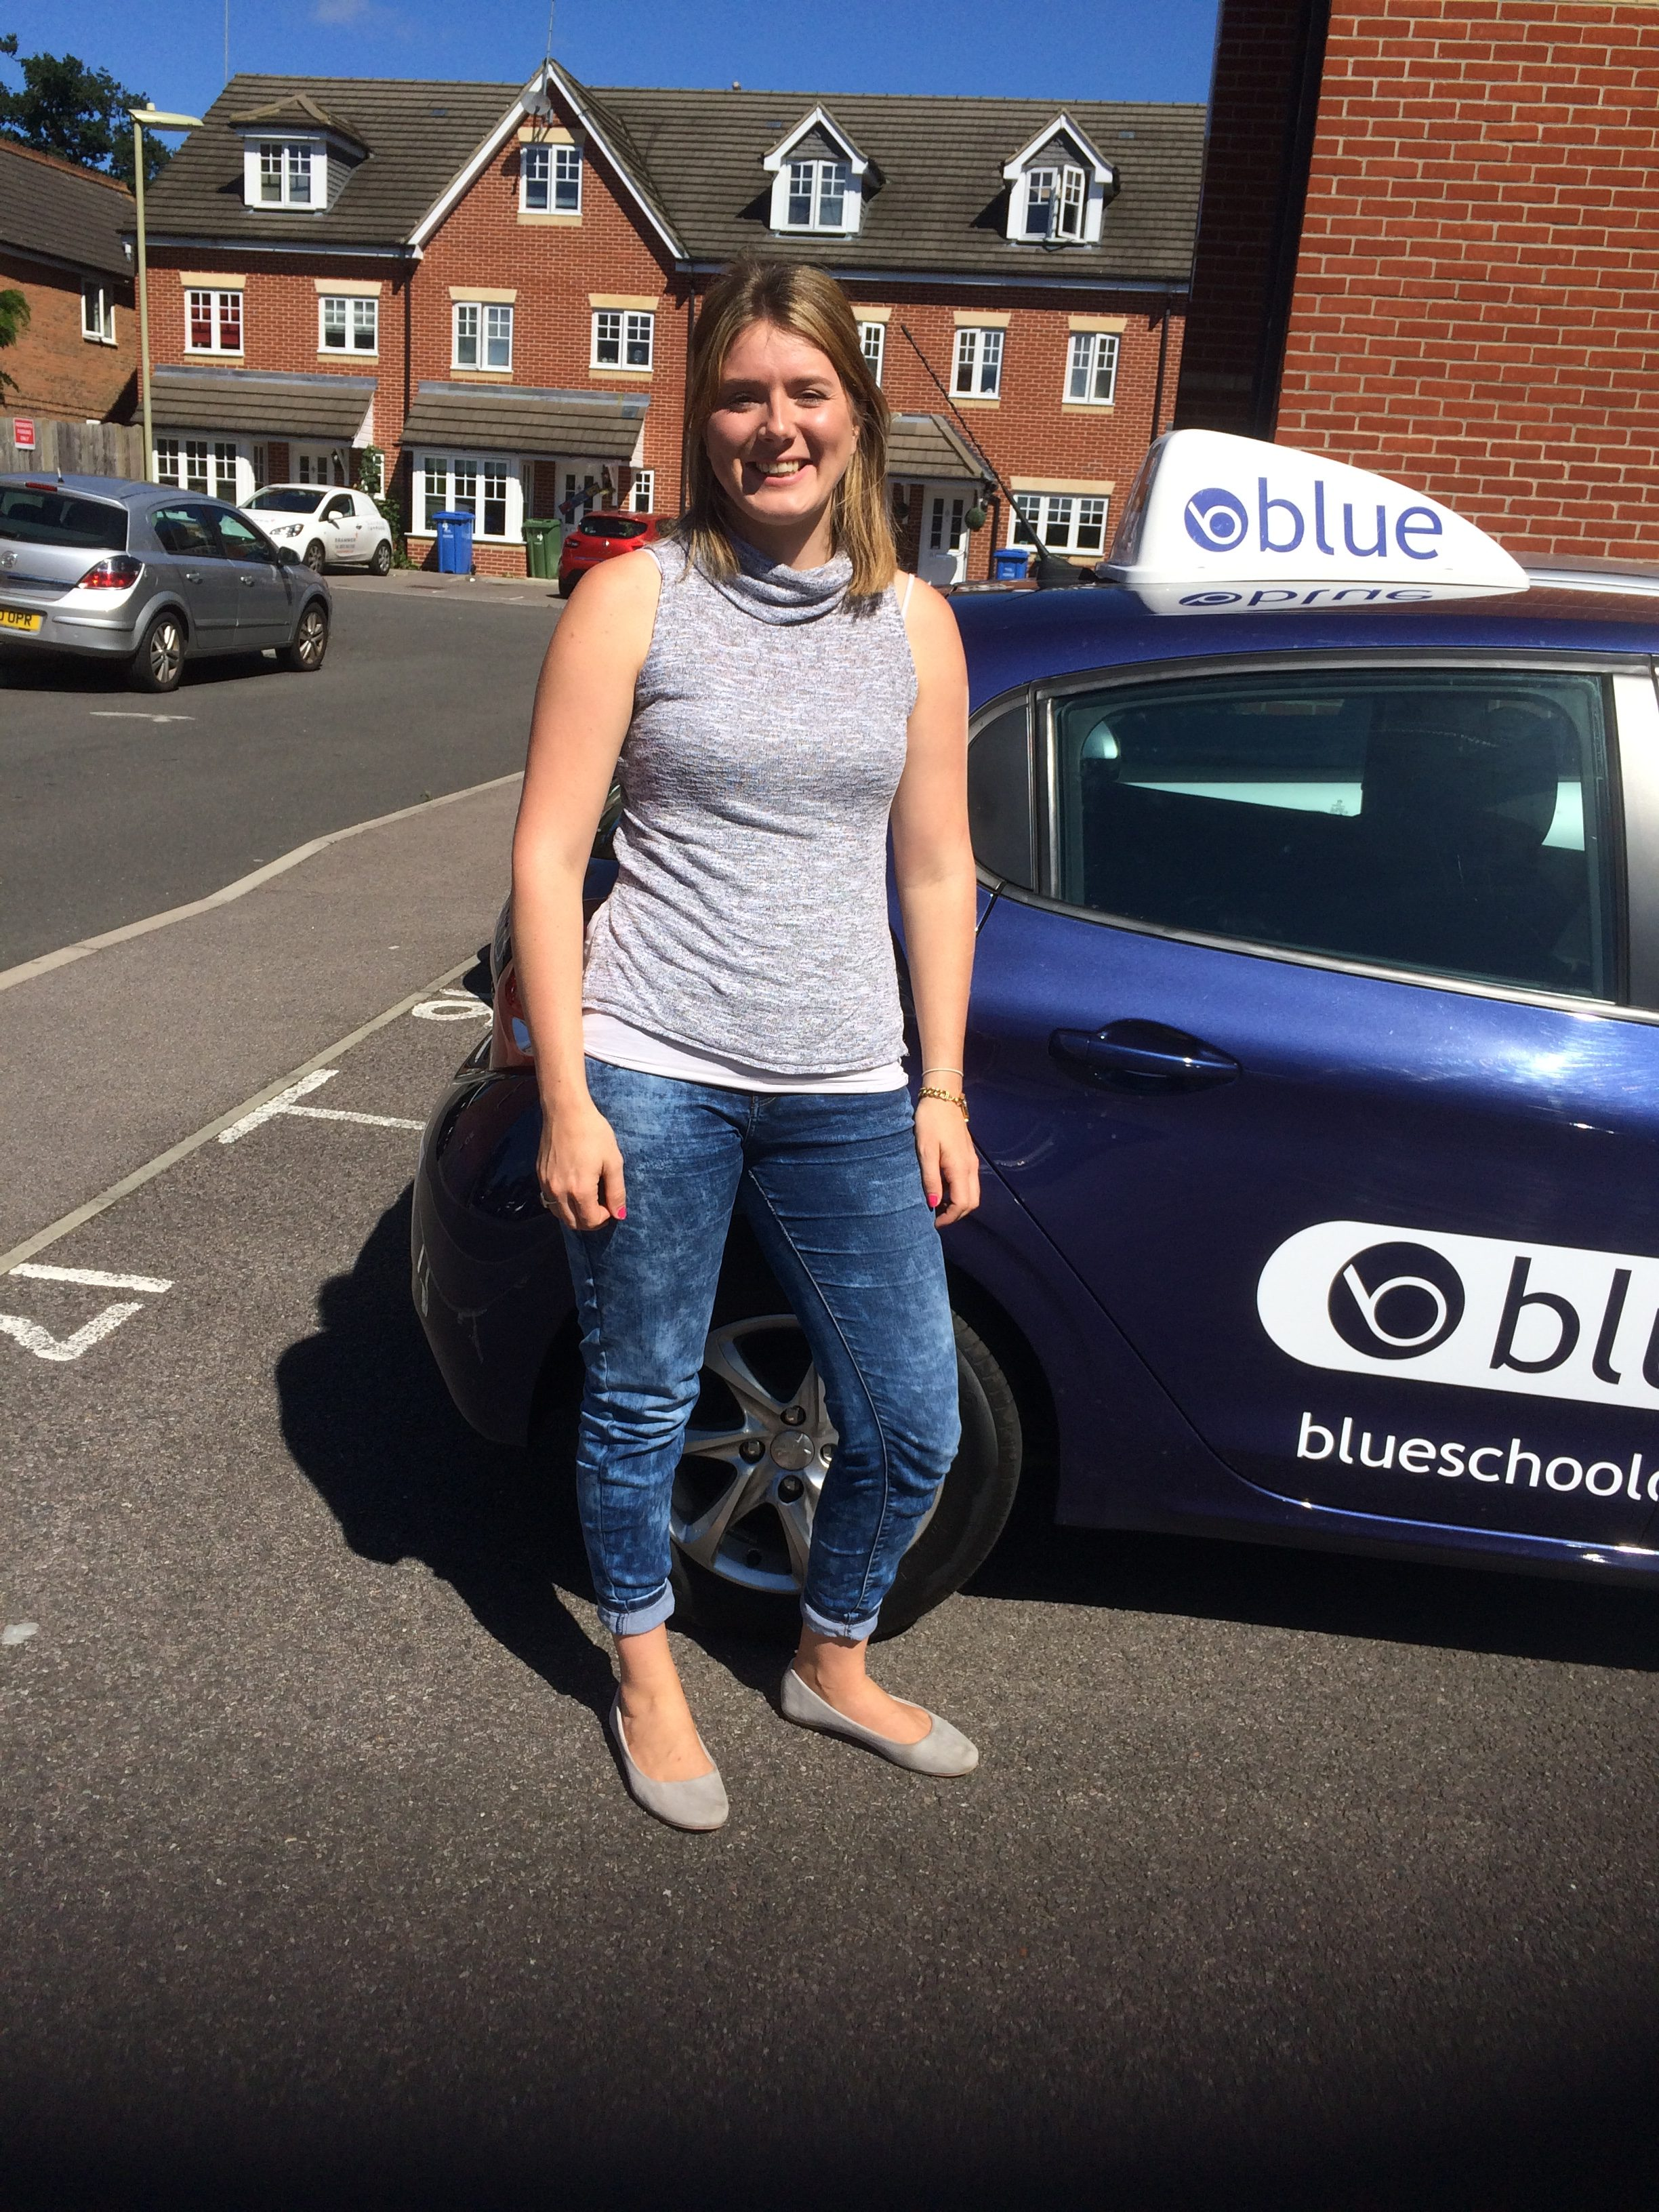 Driving Test in Farnborough Joanna from Aldershot